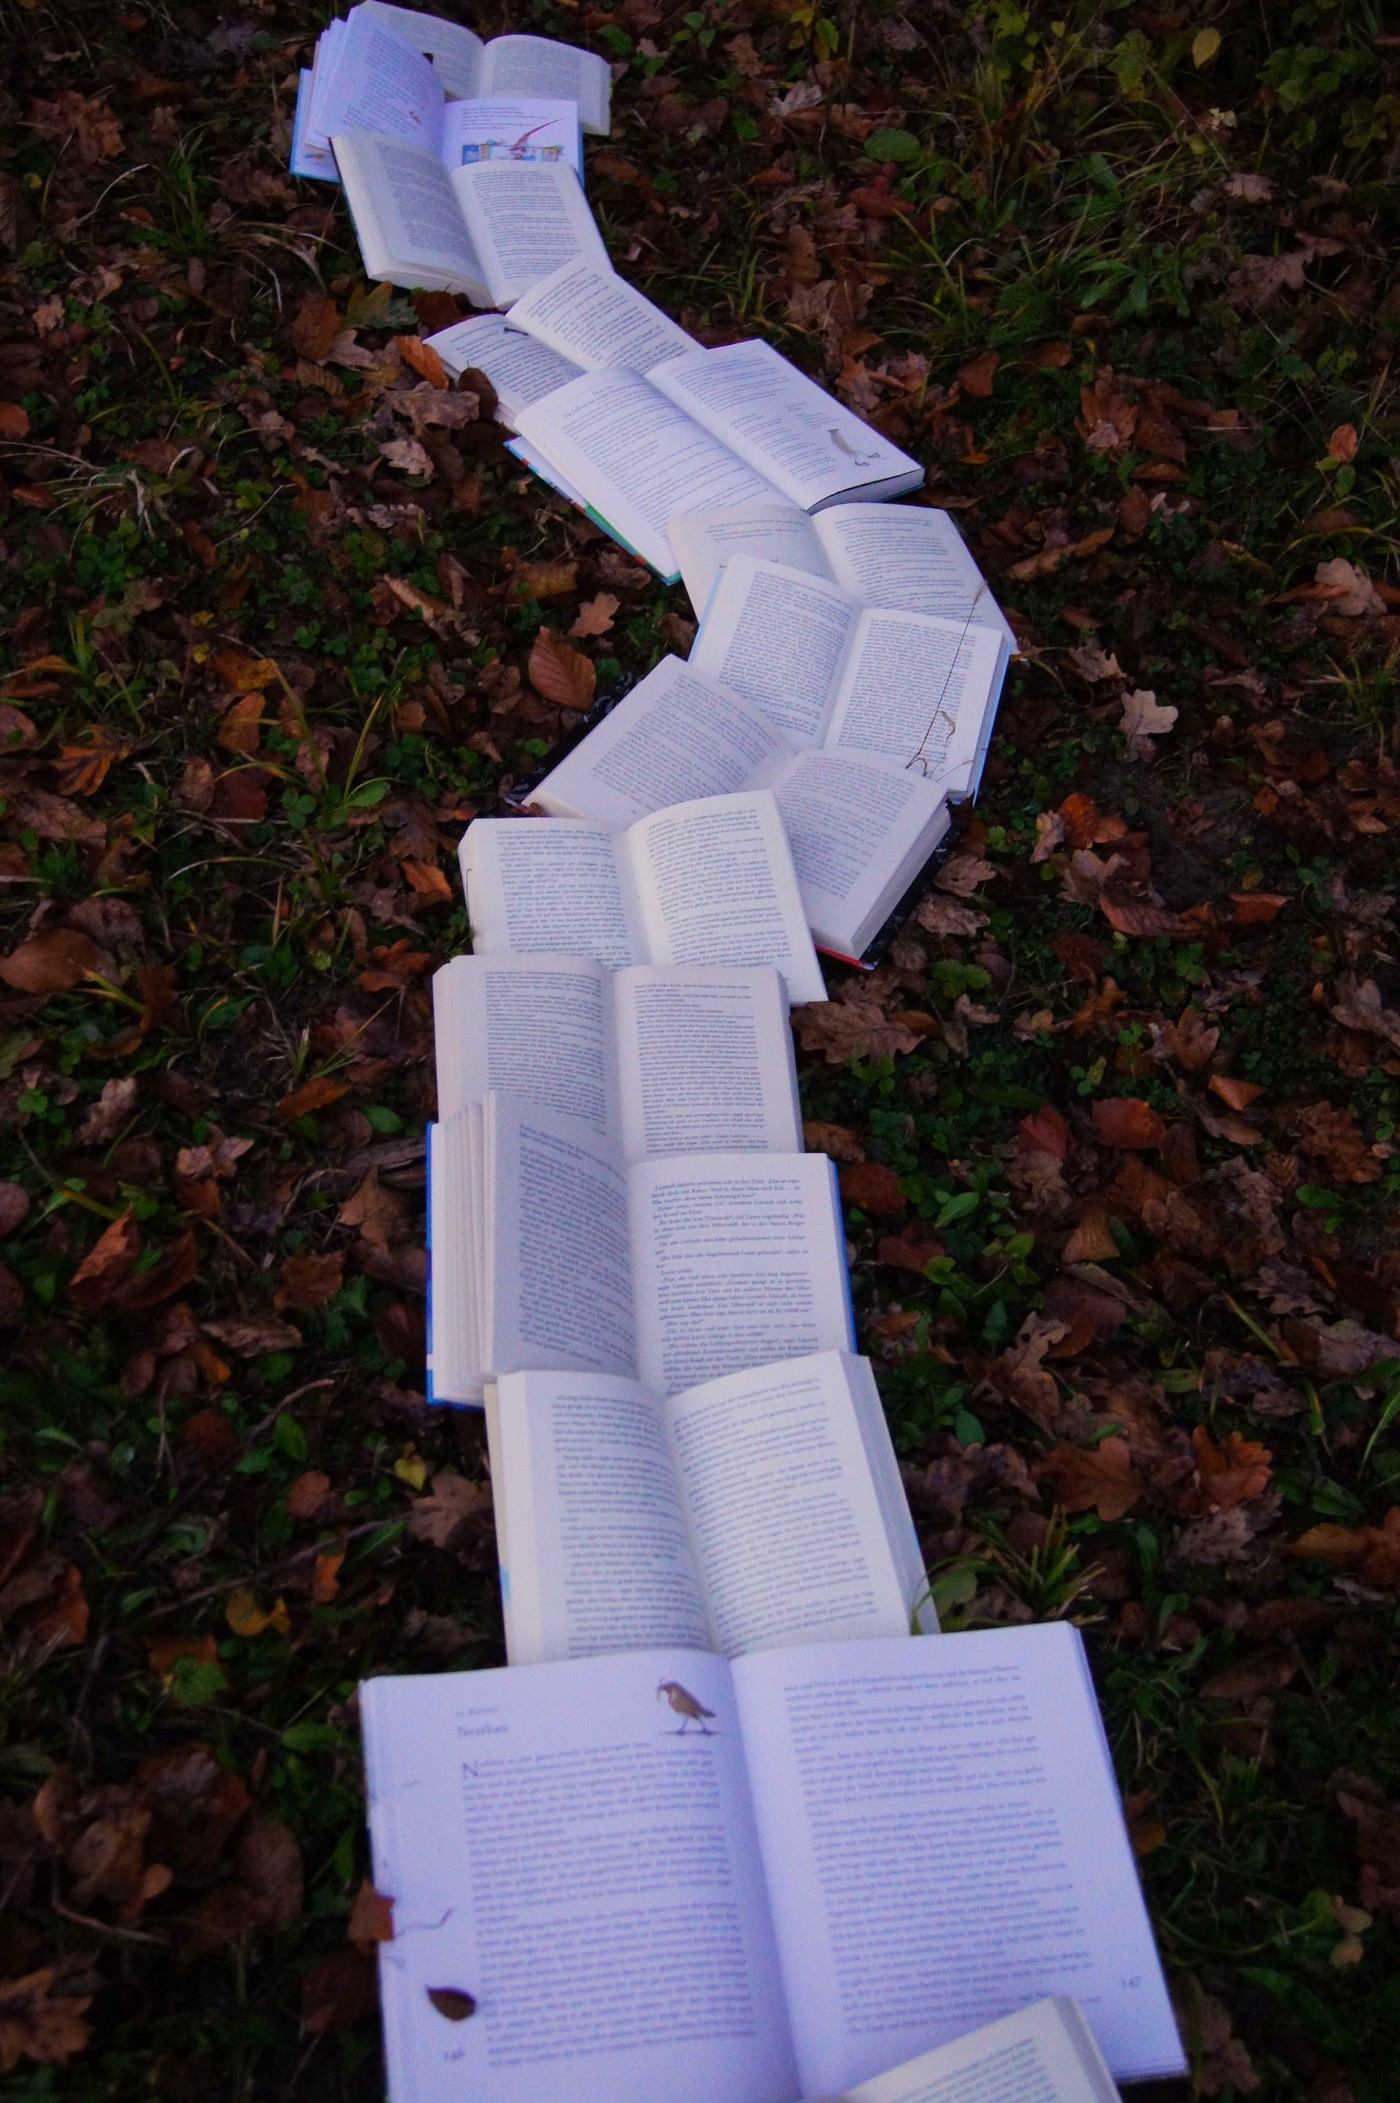 a path of open books on leaves